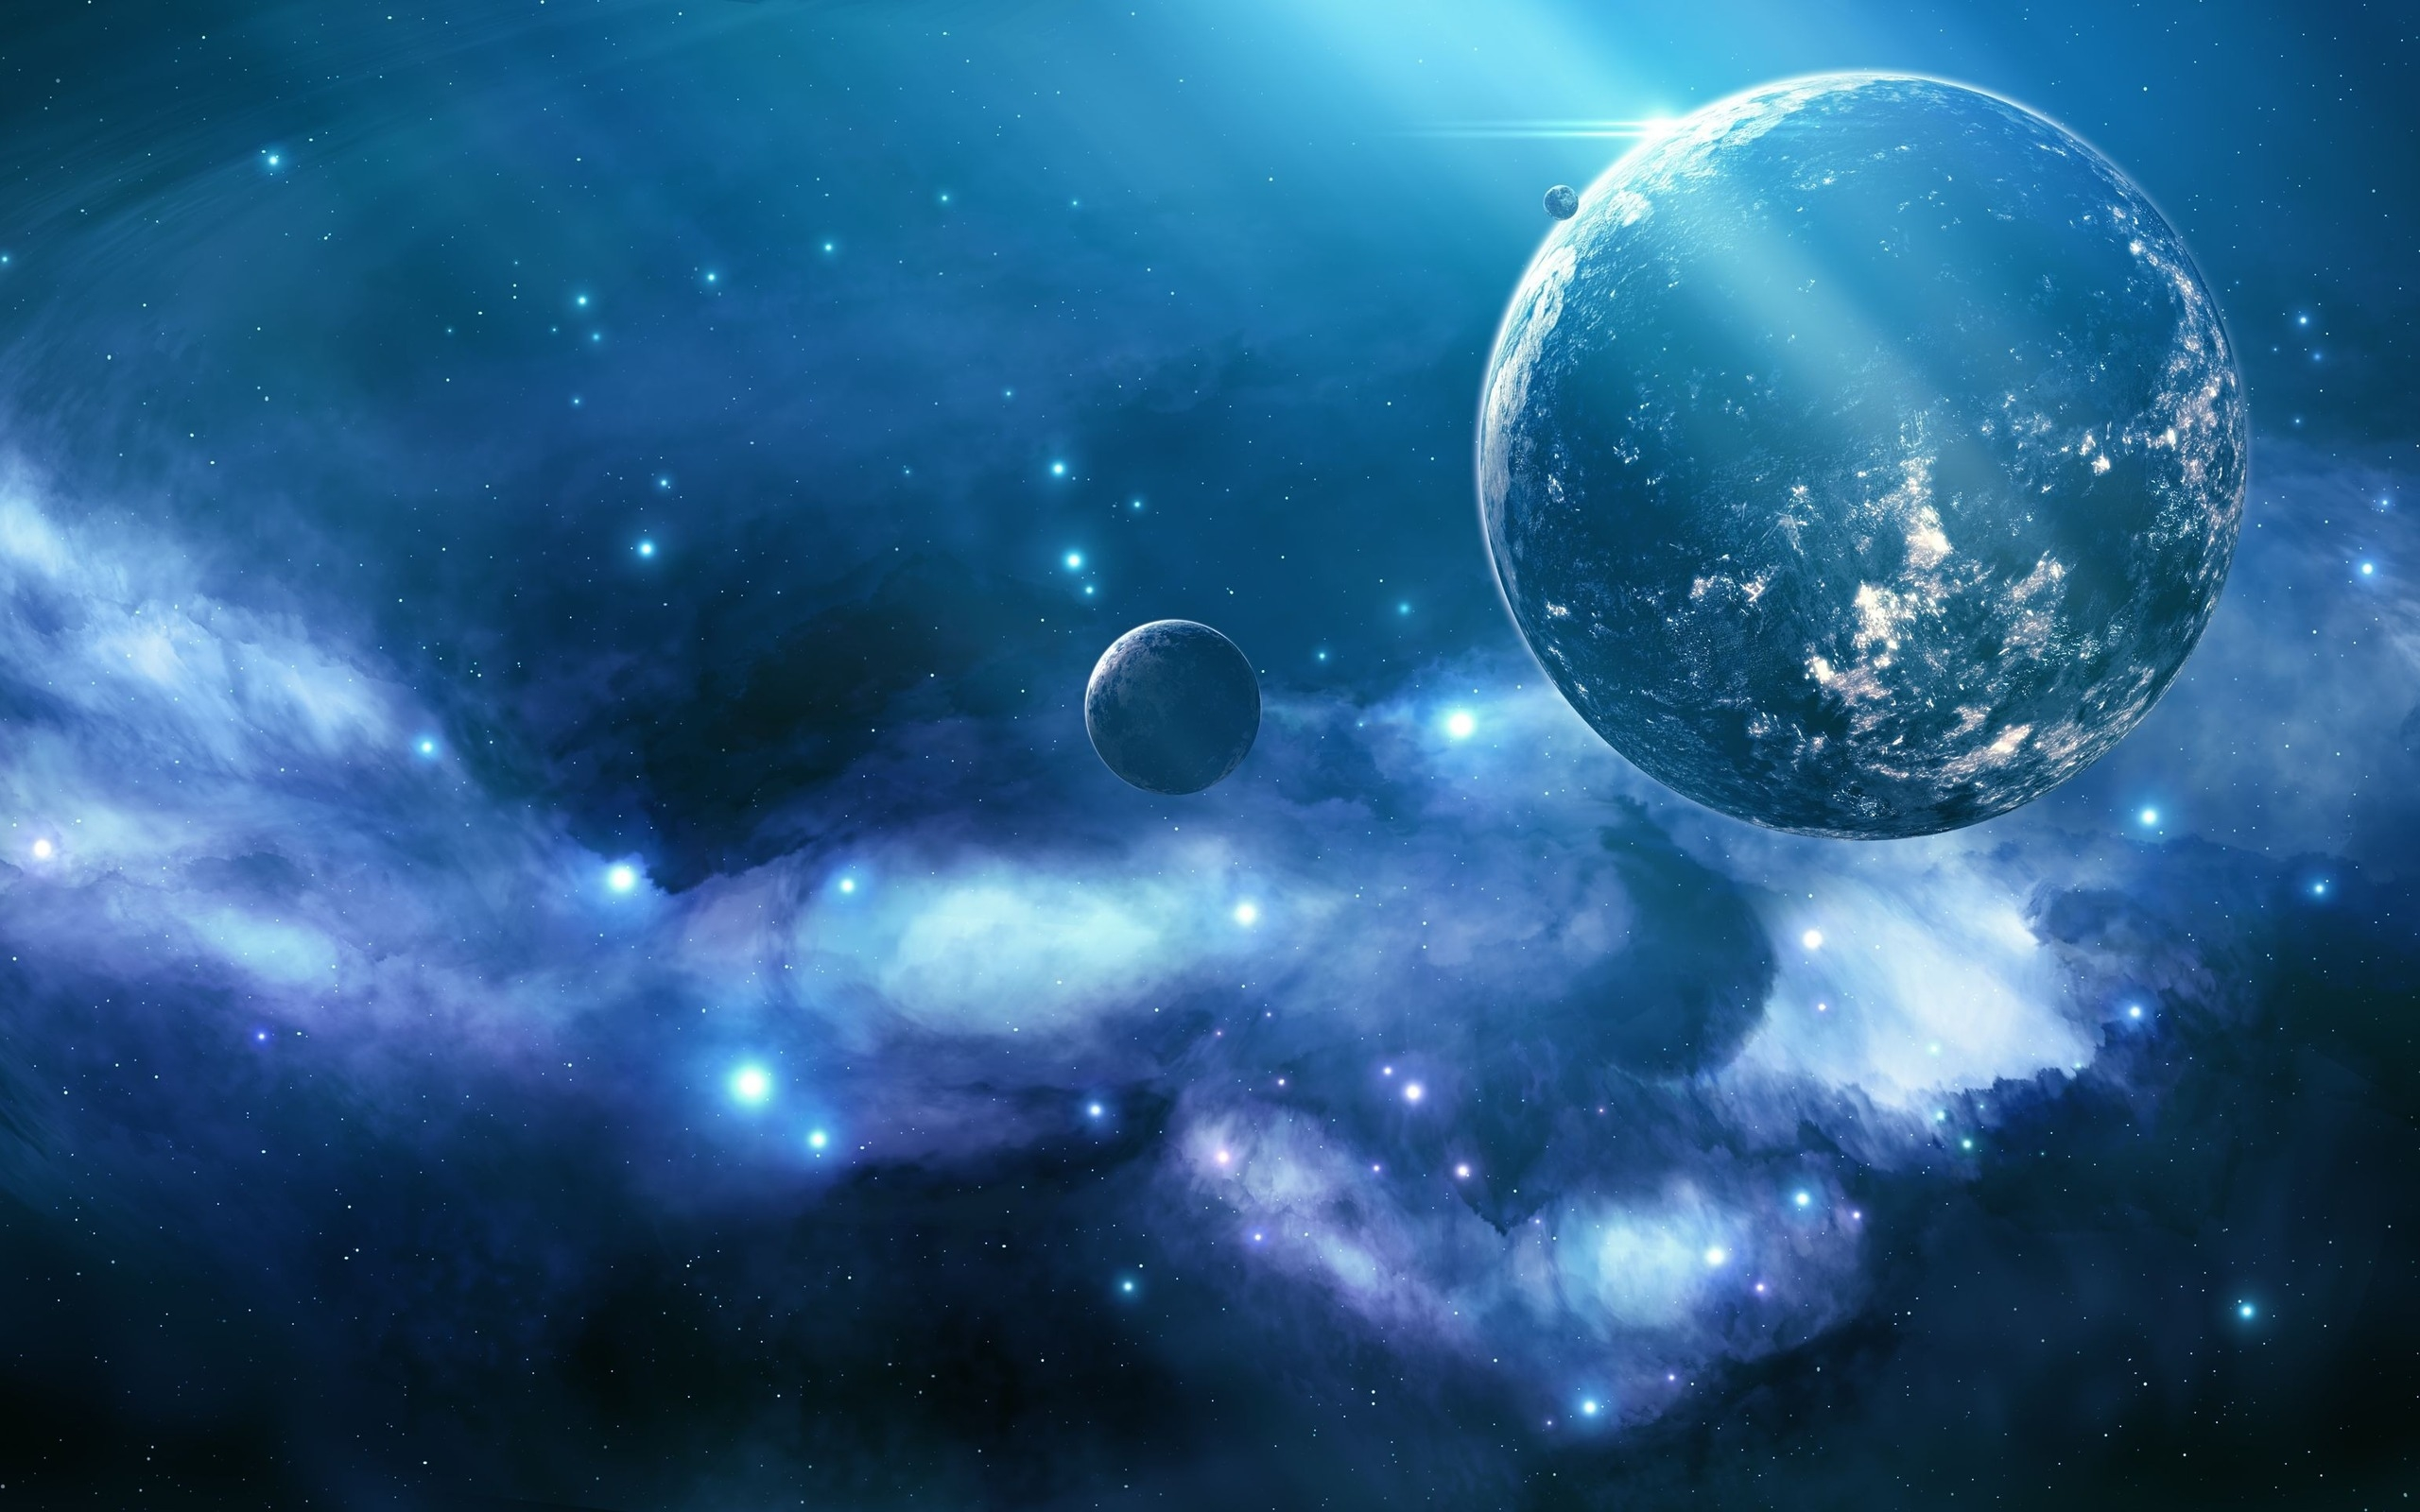 33 Free HD Universe Backgrounds For Desktops, Laptops and ...